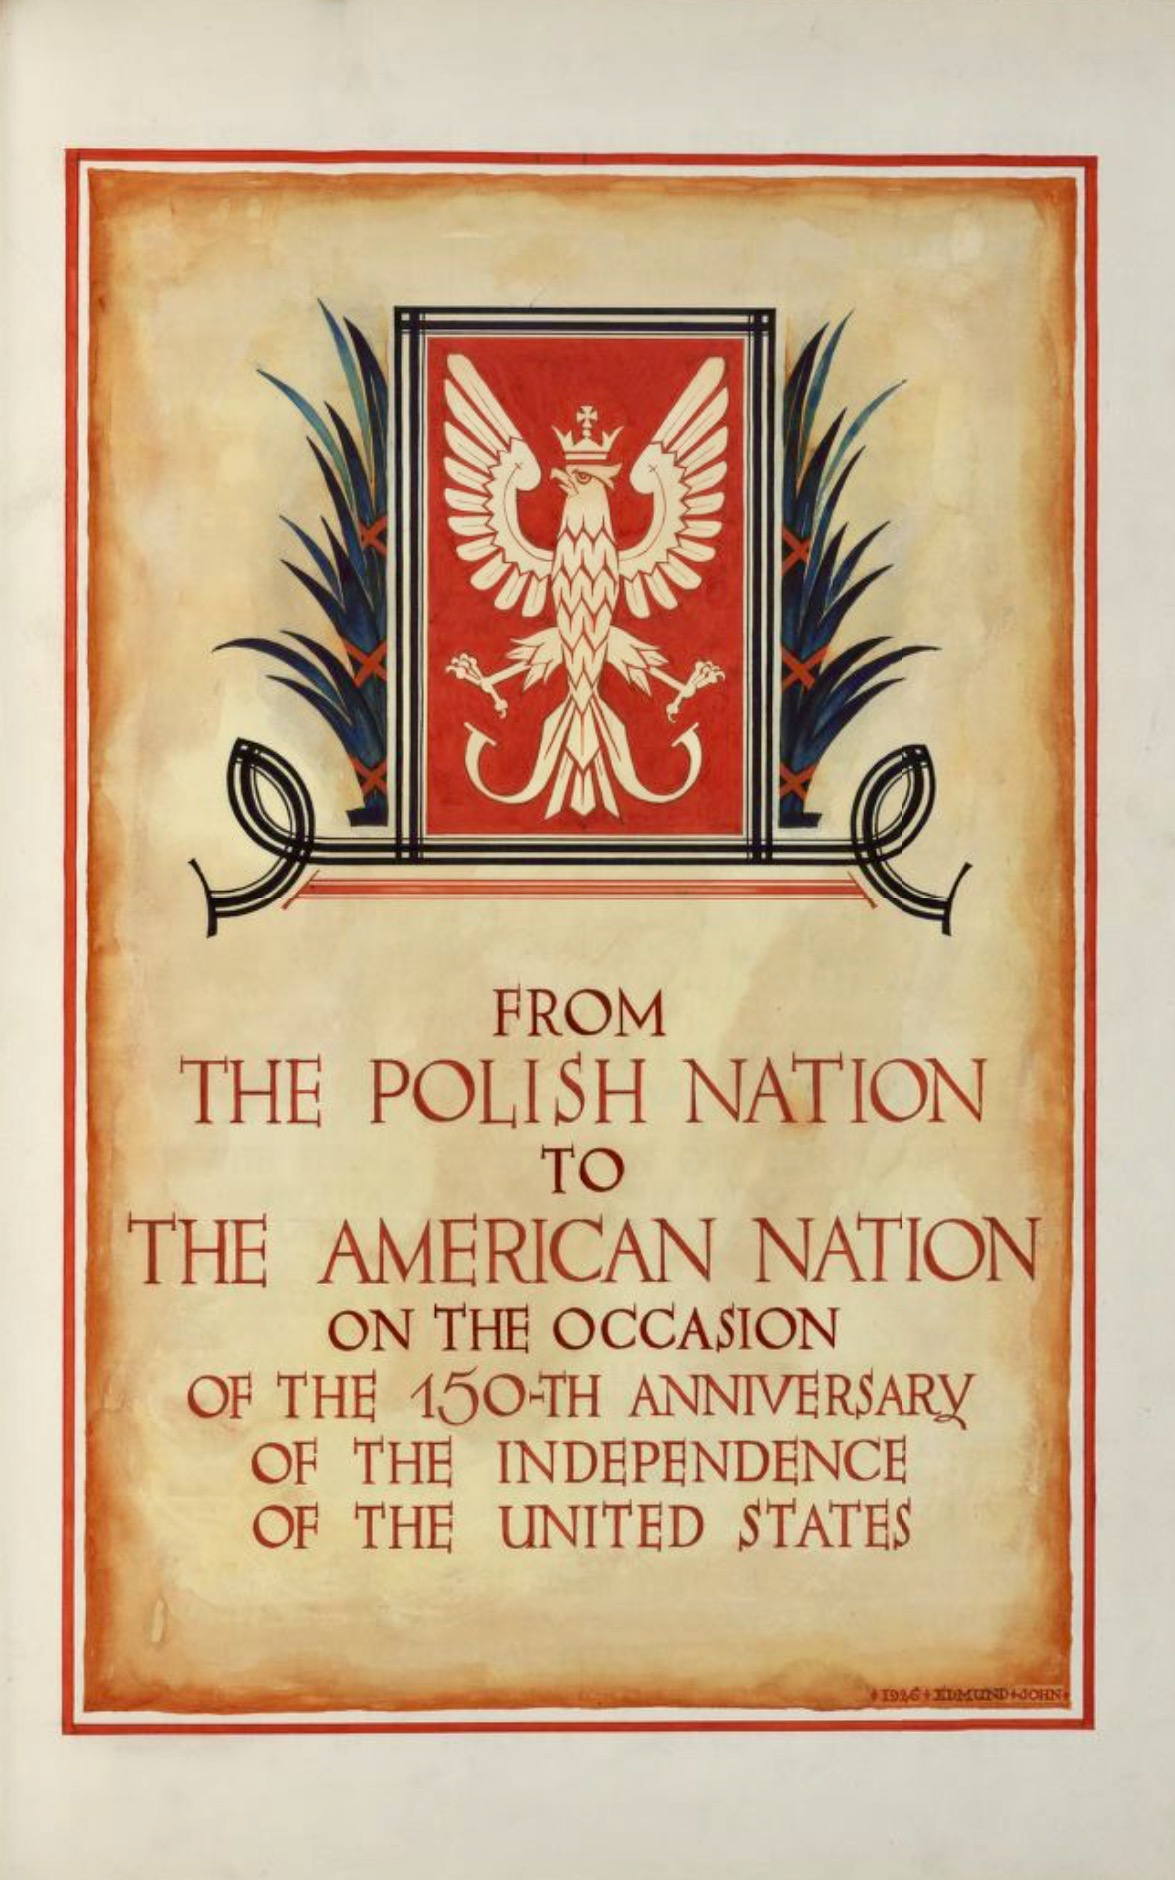 Image 5 of Polish Declarations of Admiration and Friendship for the United States: President of the Polish Republic and other officials and representatives of state and municipal institutions, social organizations, and religious bodies; Volume 1